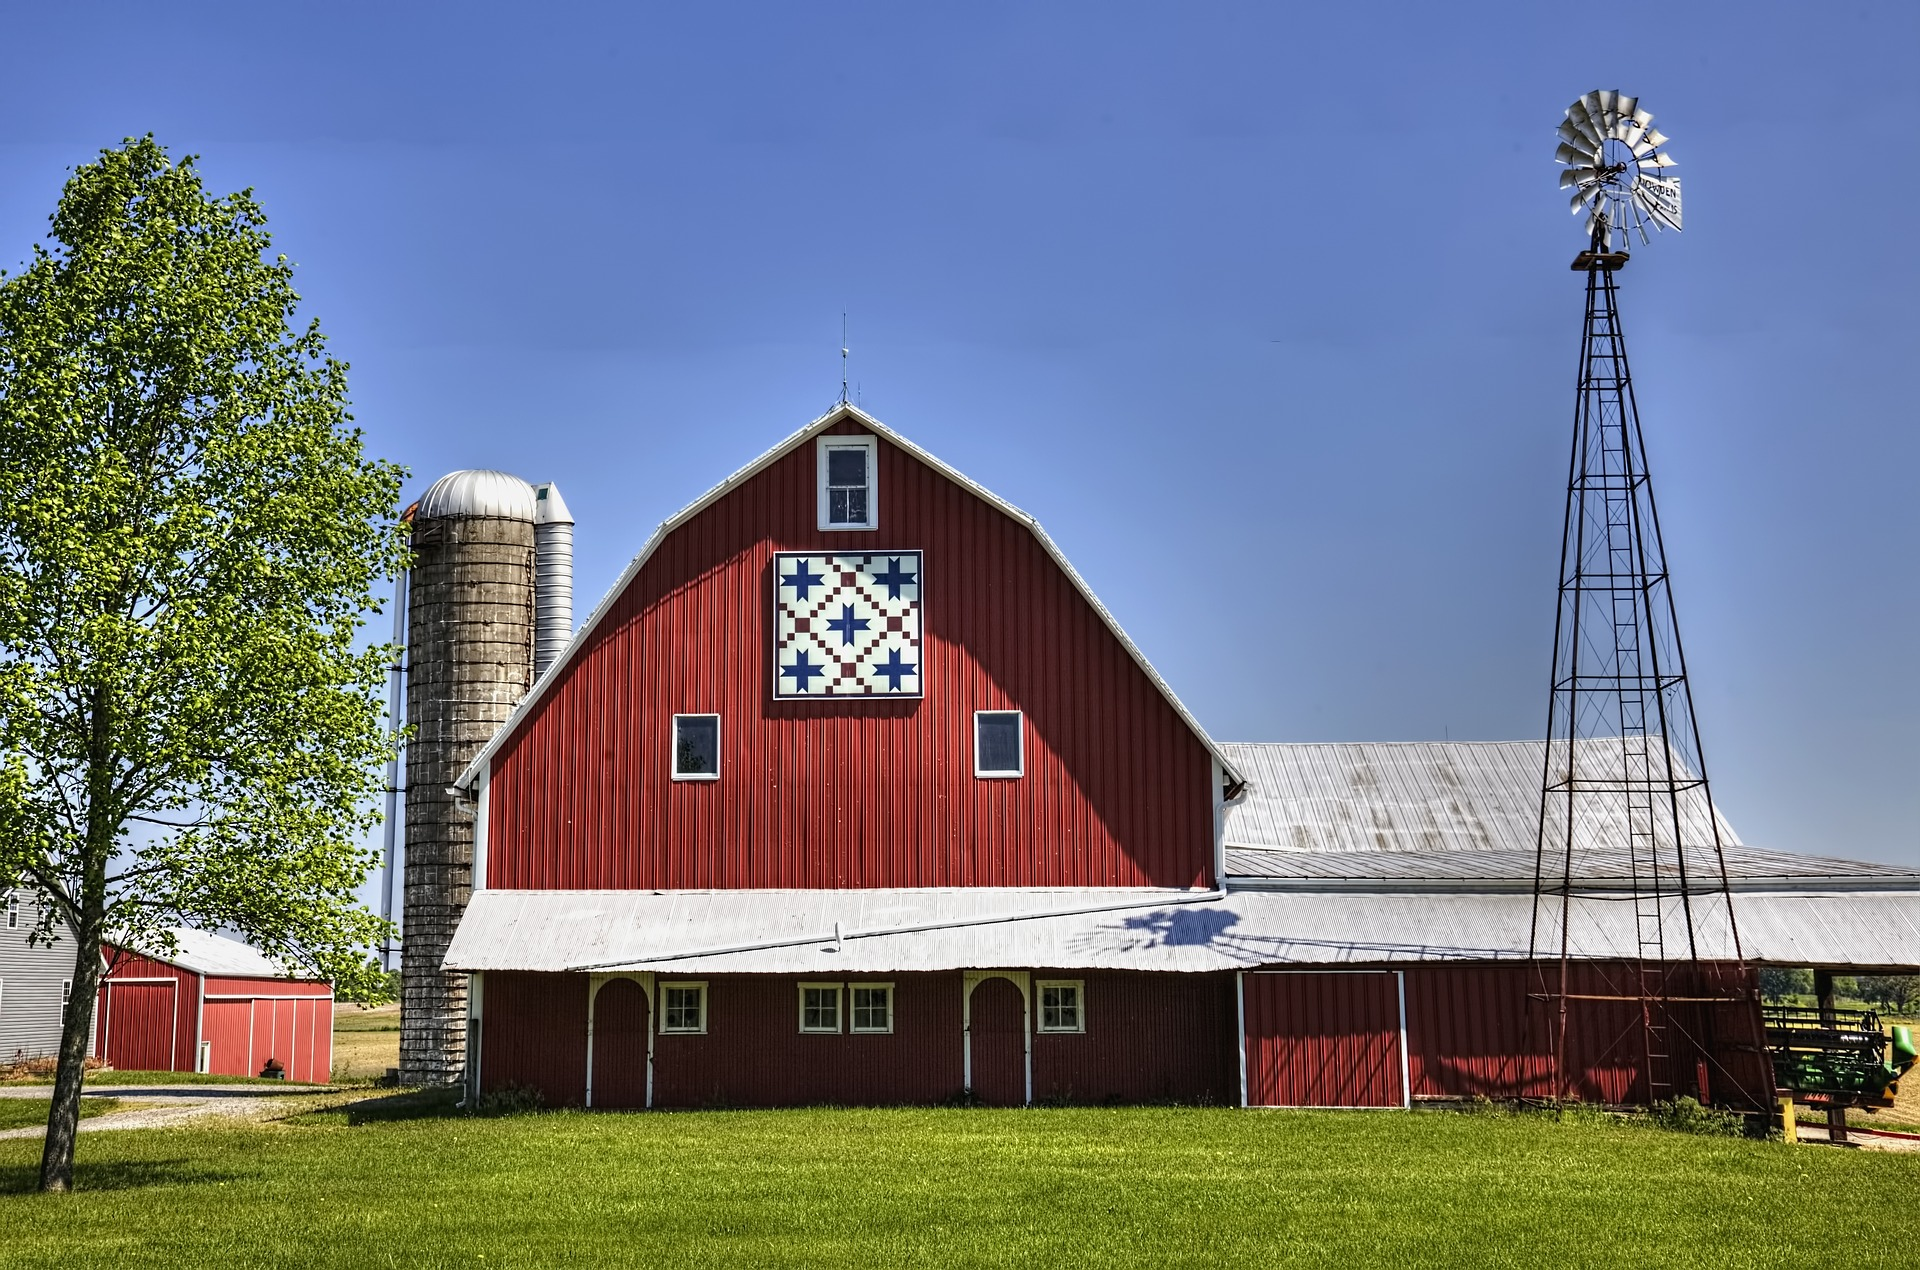 Maryland Farm with a Quilt and Windmill